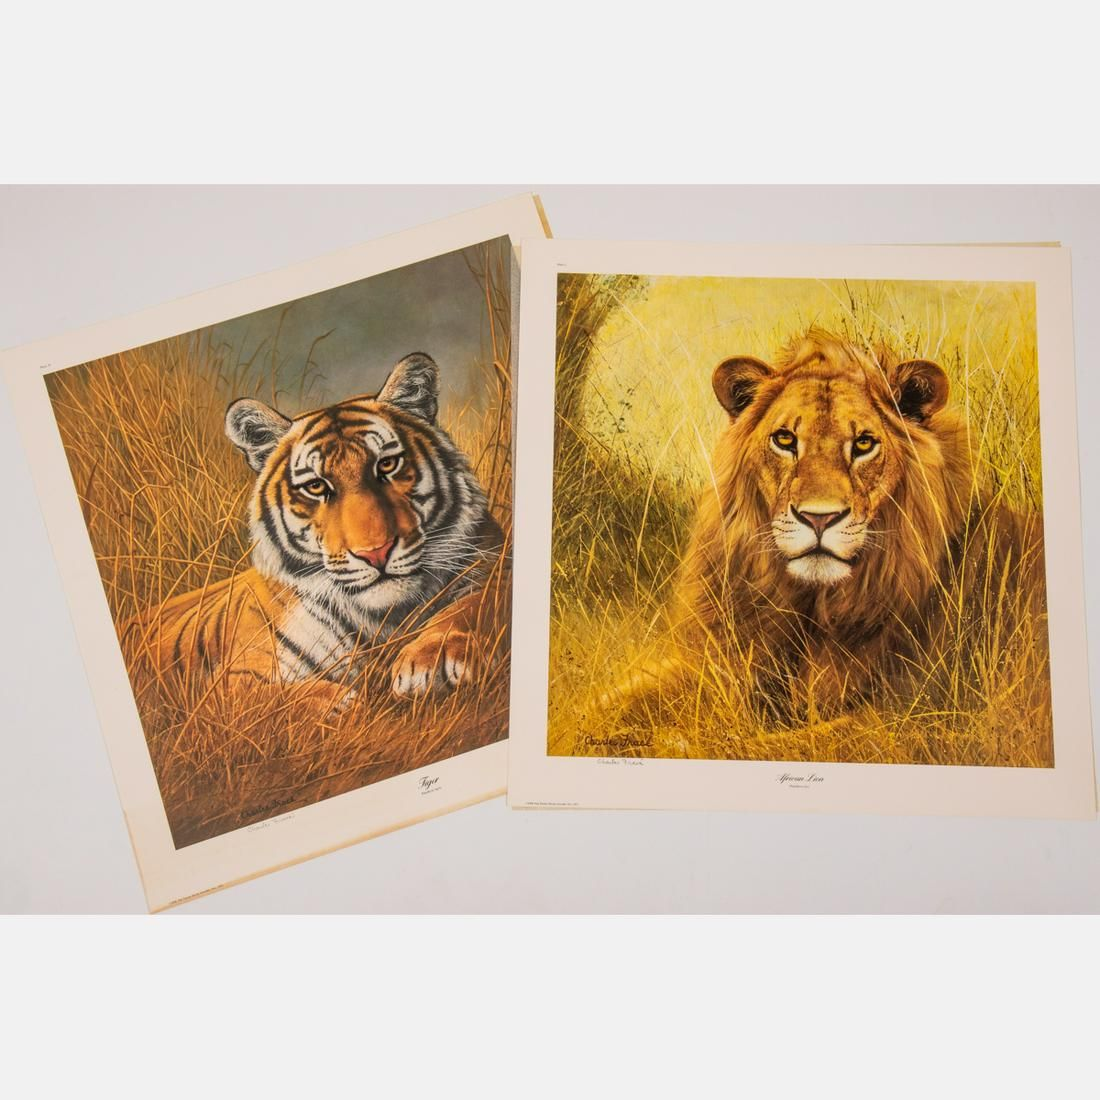 Two Lithographs by Charles Frace (American, 1926-2005),